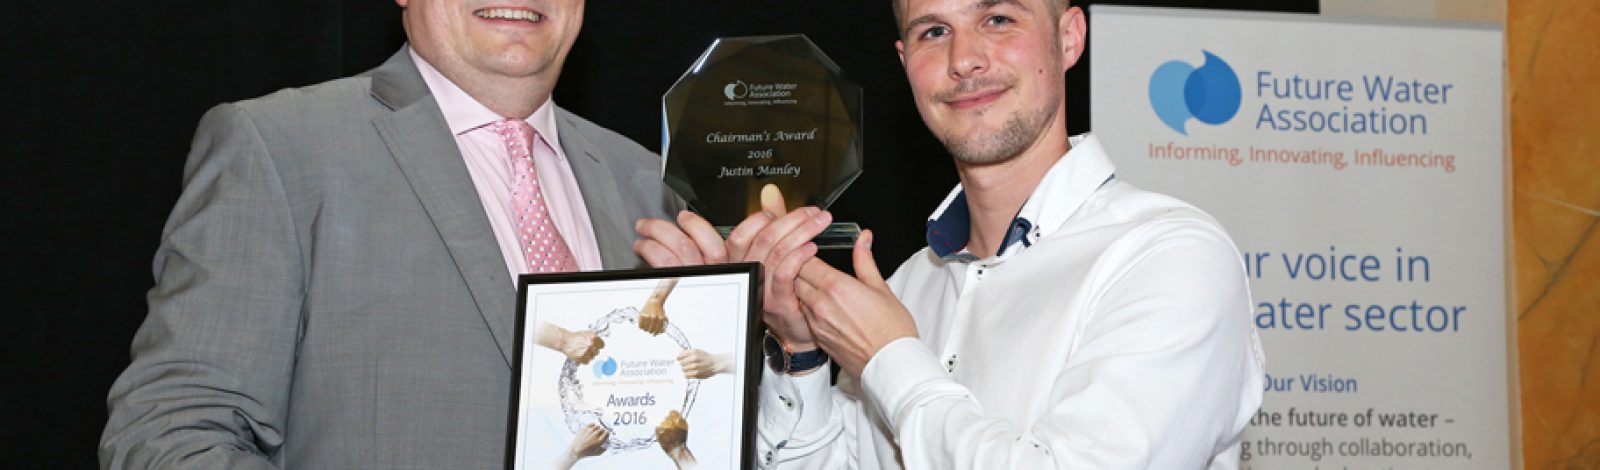 Double delight at the Future Water Association Awards - Clancy Docwra